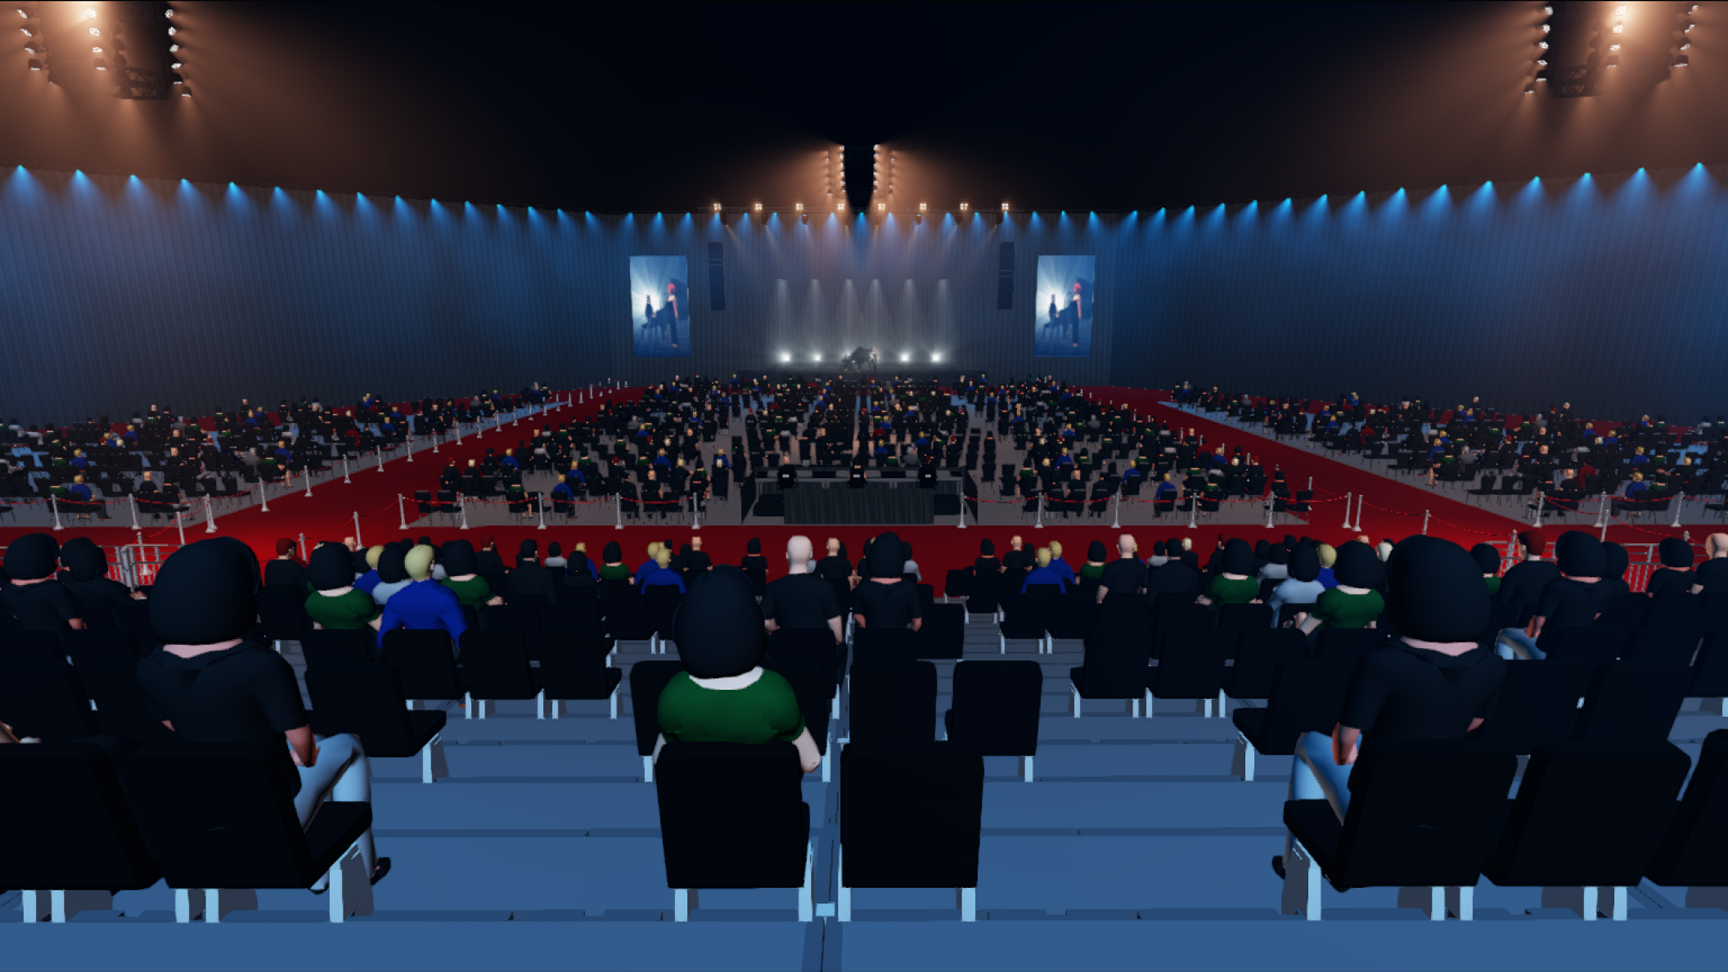 20200702_-_M-theater_-_V6R4.png